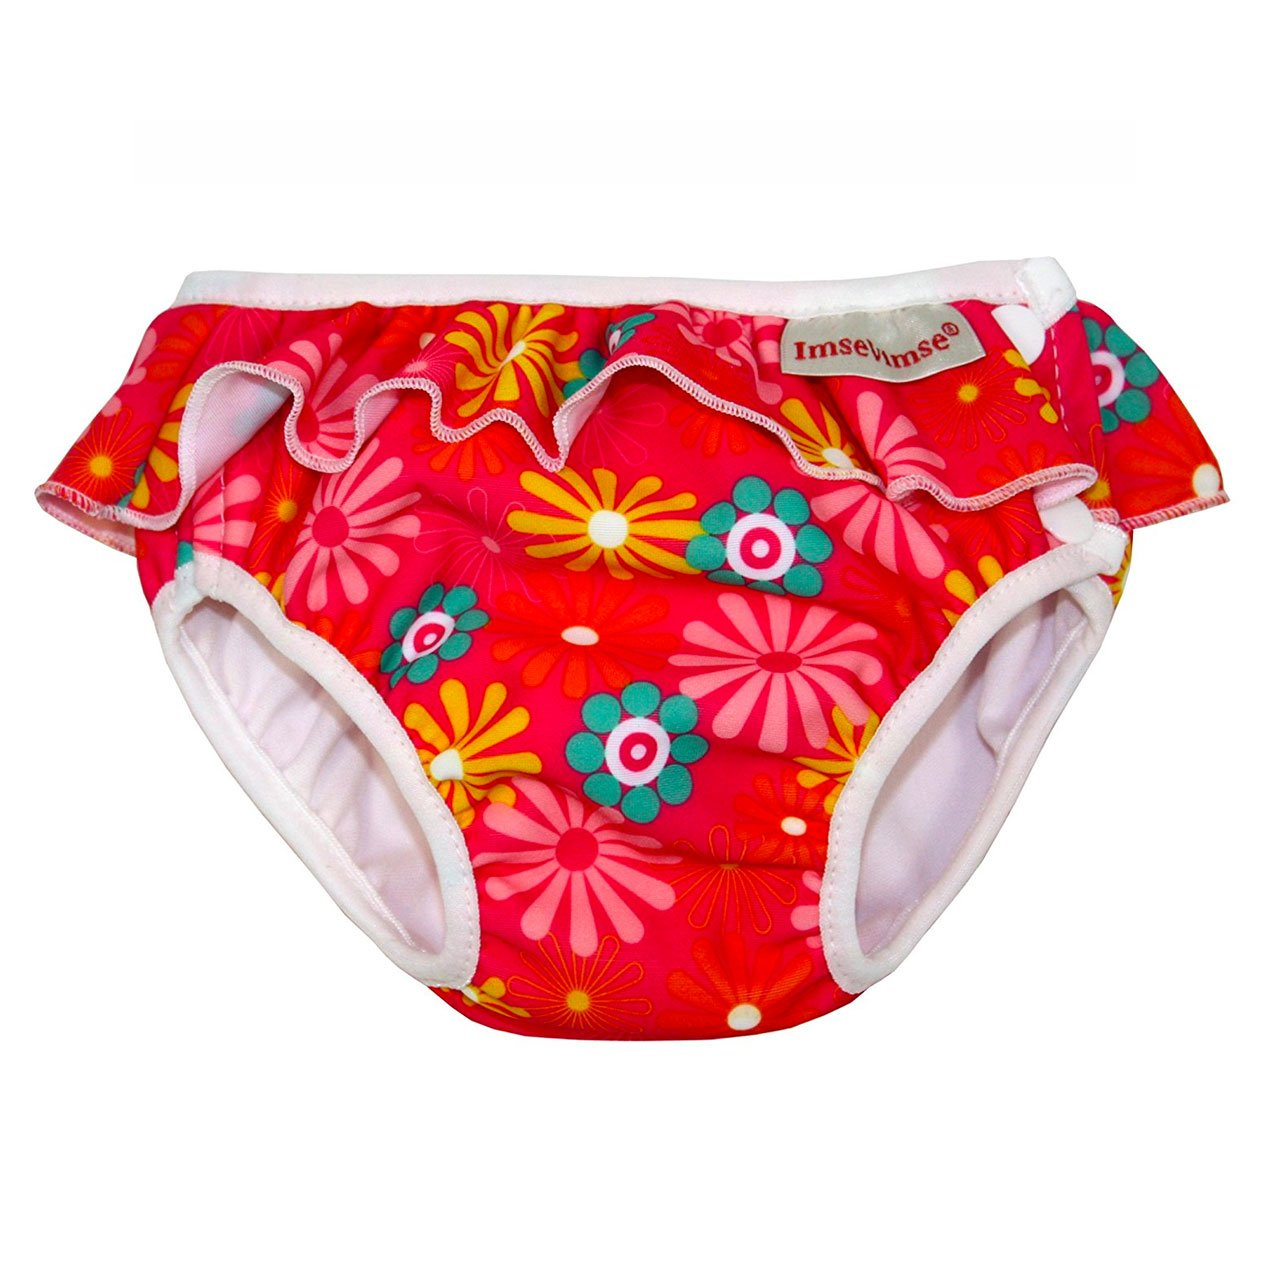 Imse Vimse Reusable Swim Nappies Imse Vimse Nappies Pink Daisy with Frill / Newborn (4-6kg) at Little Earth Nest Eco Shop